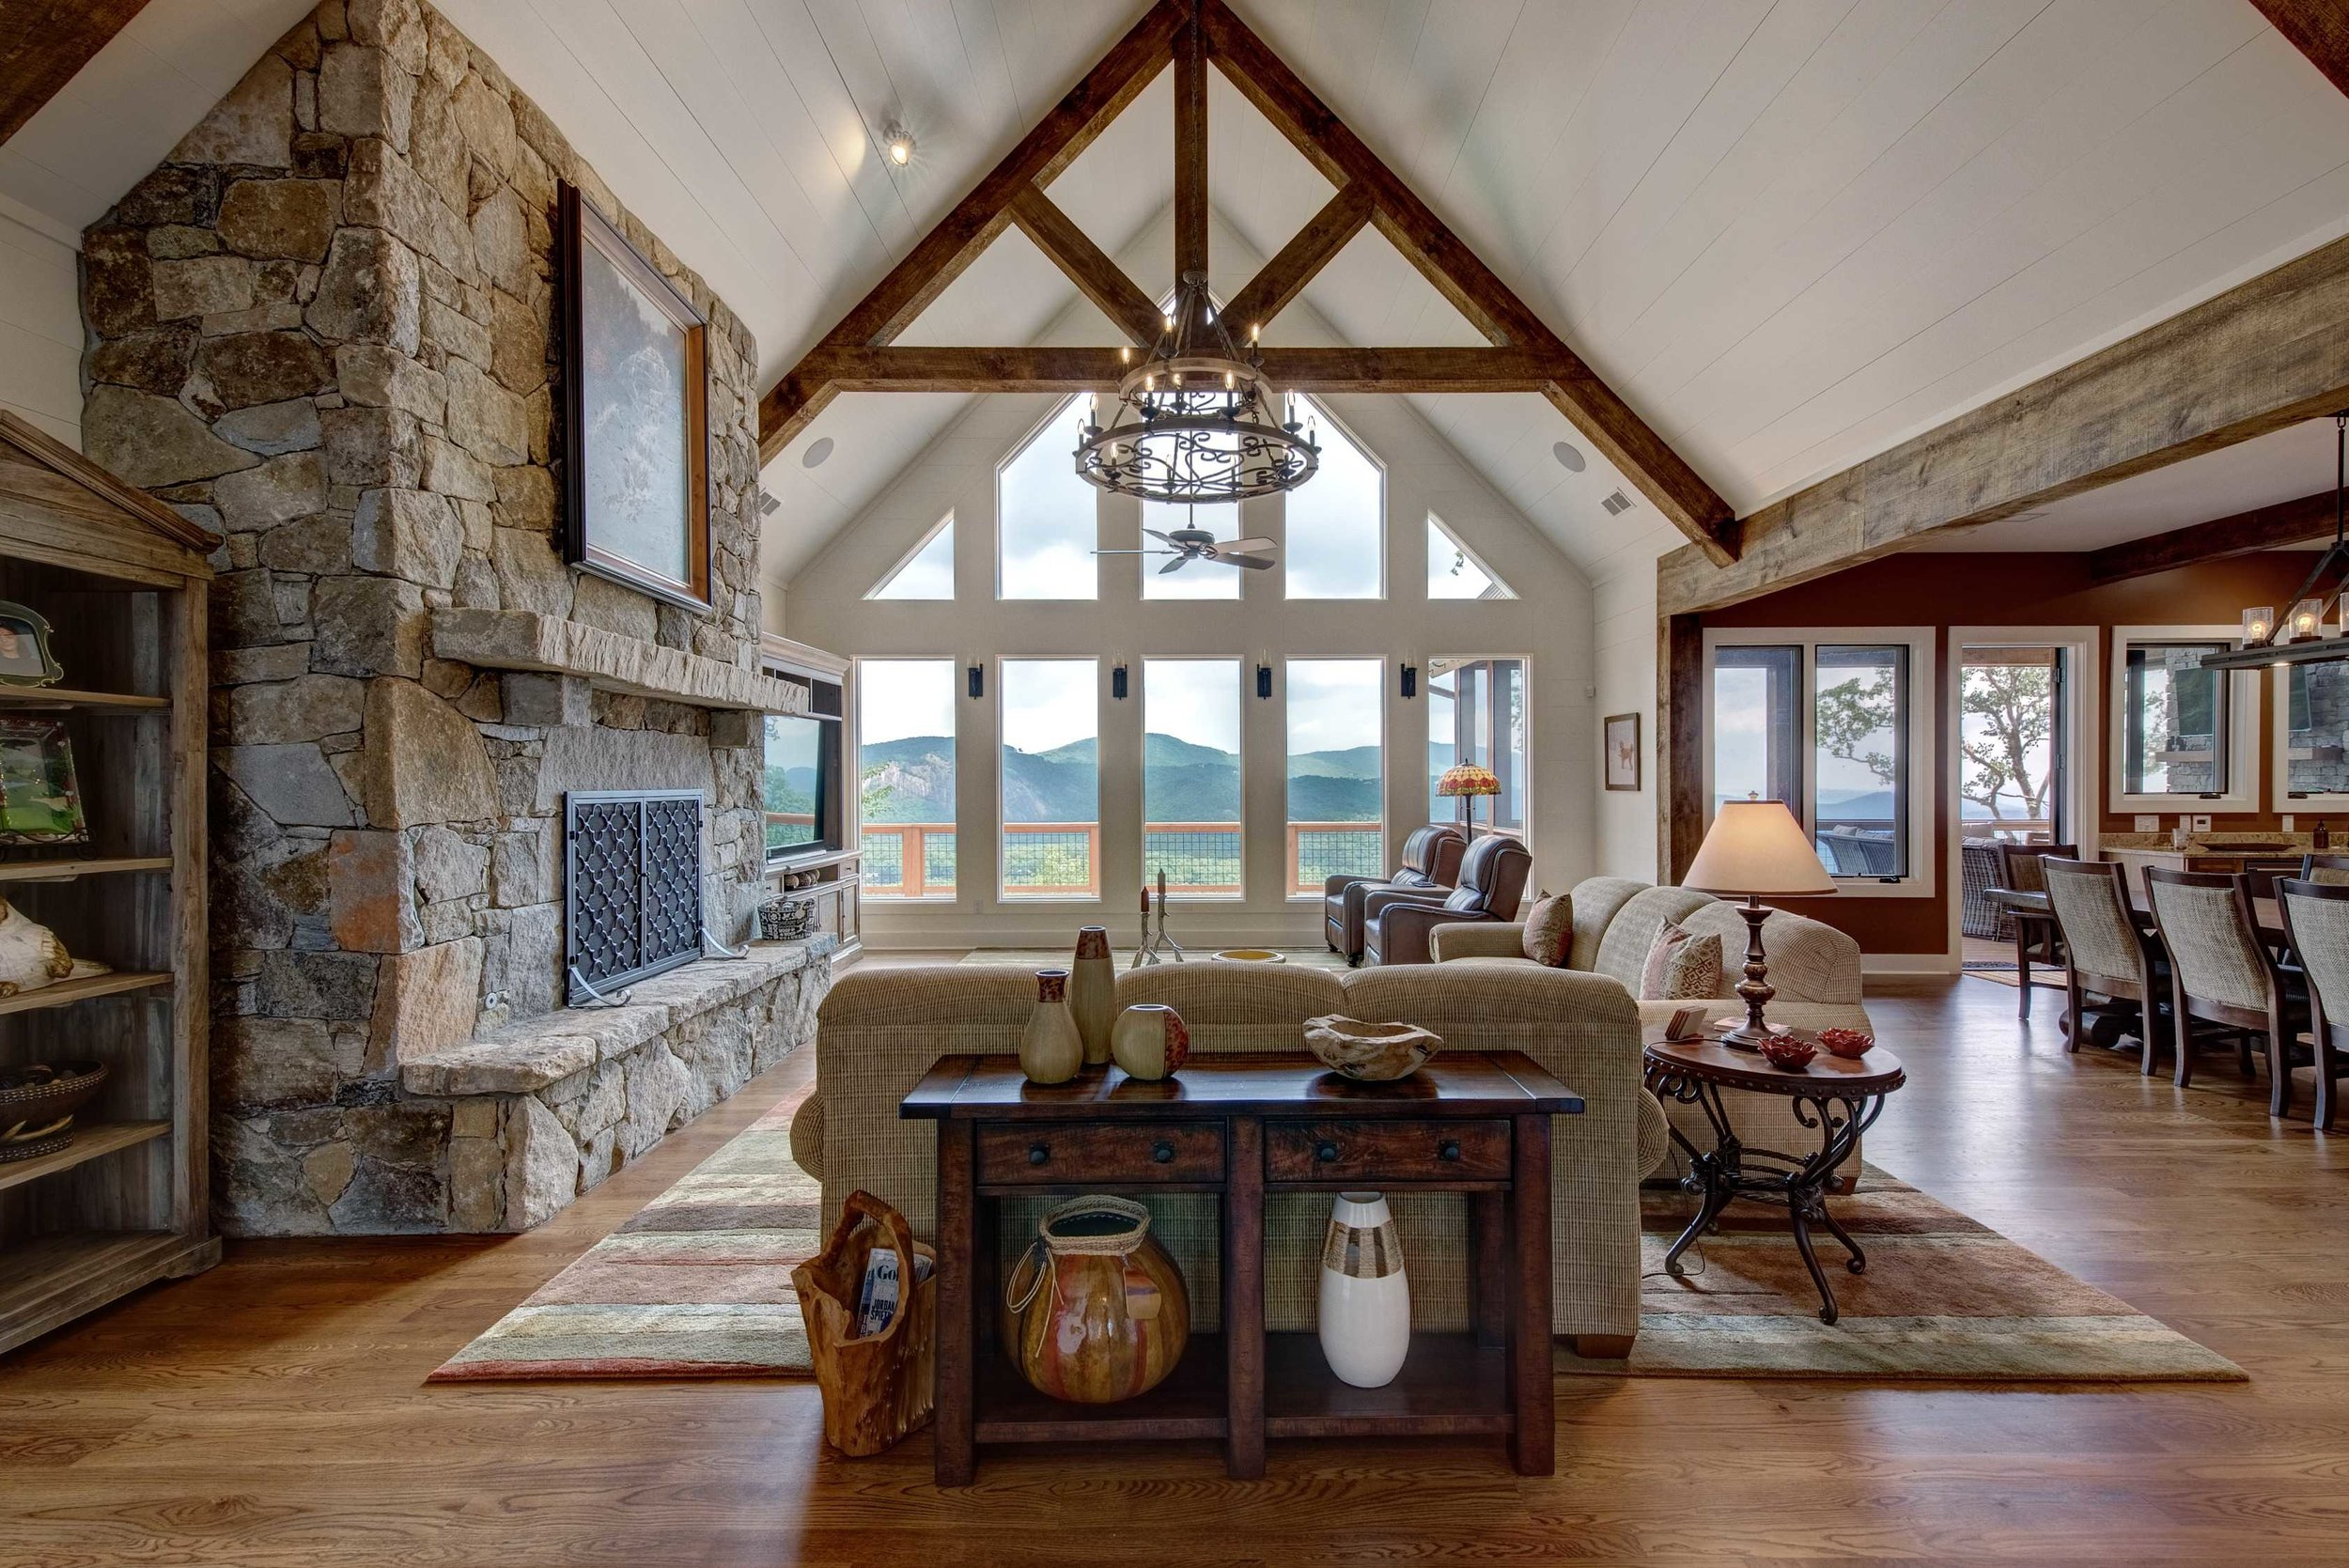 Click image to view home     The Summit Home